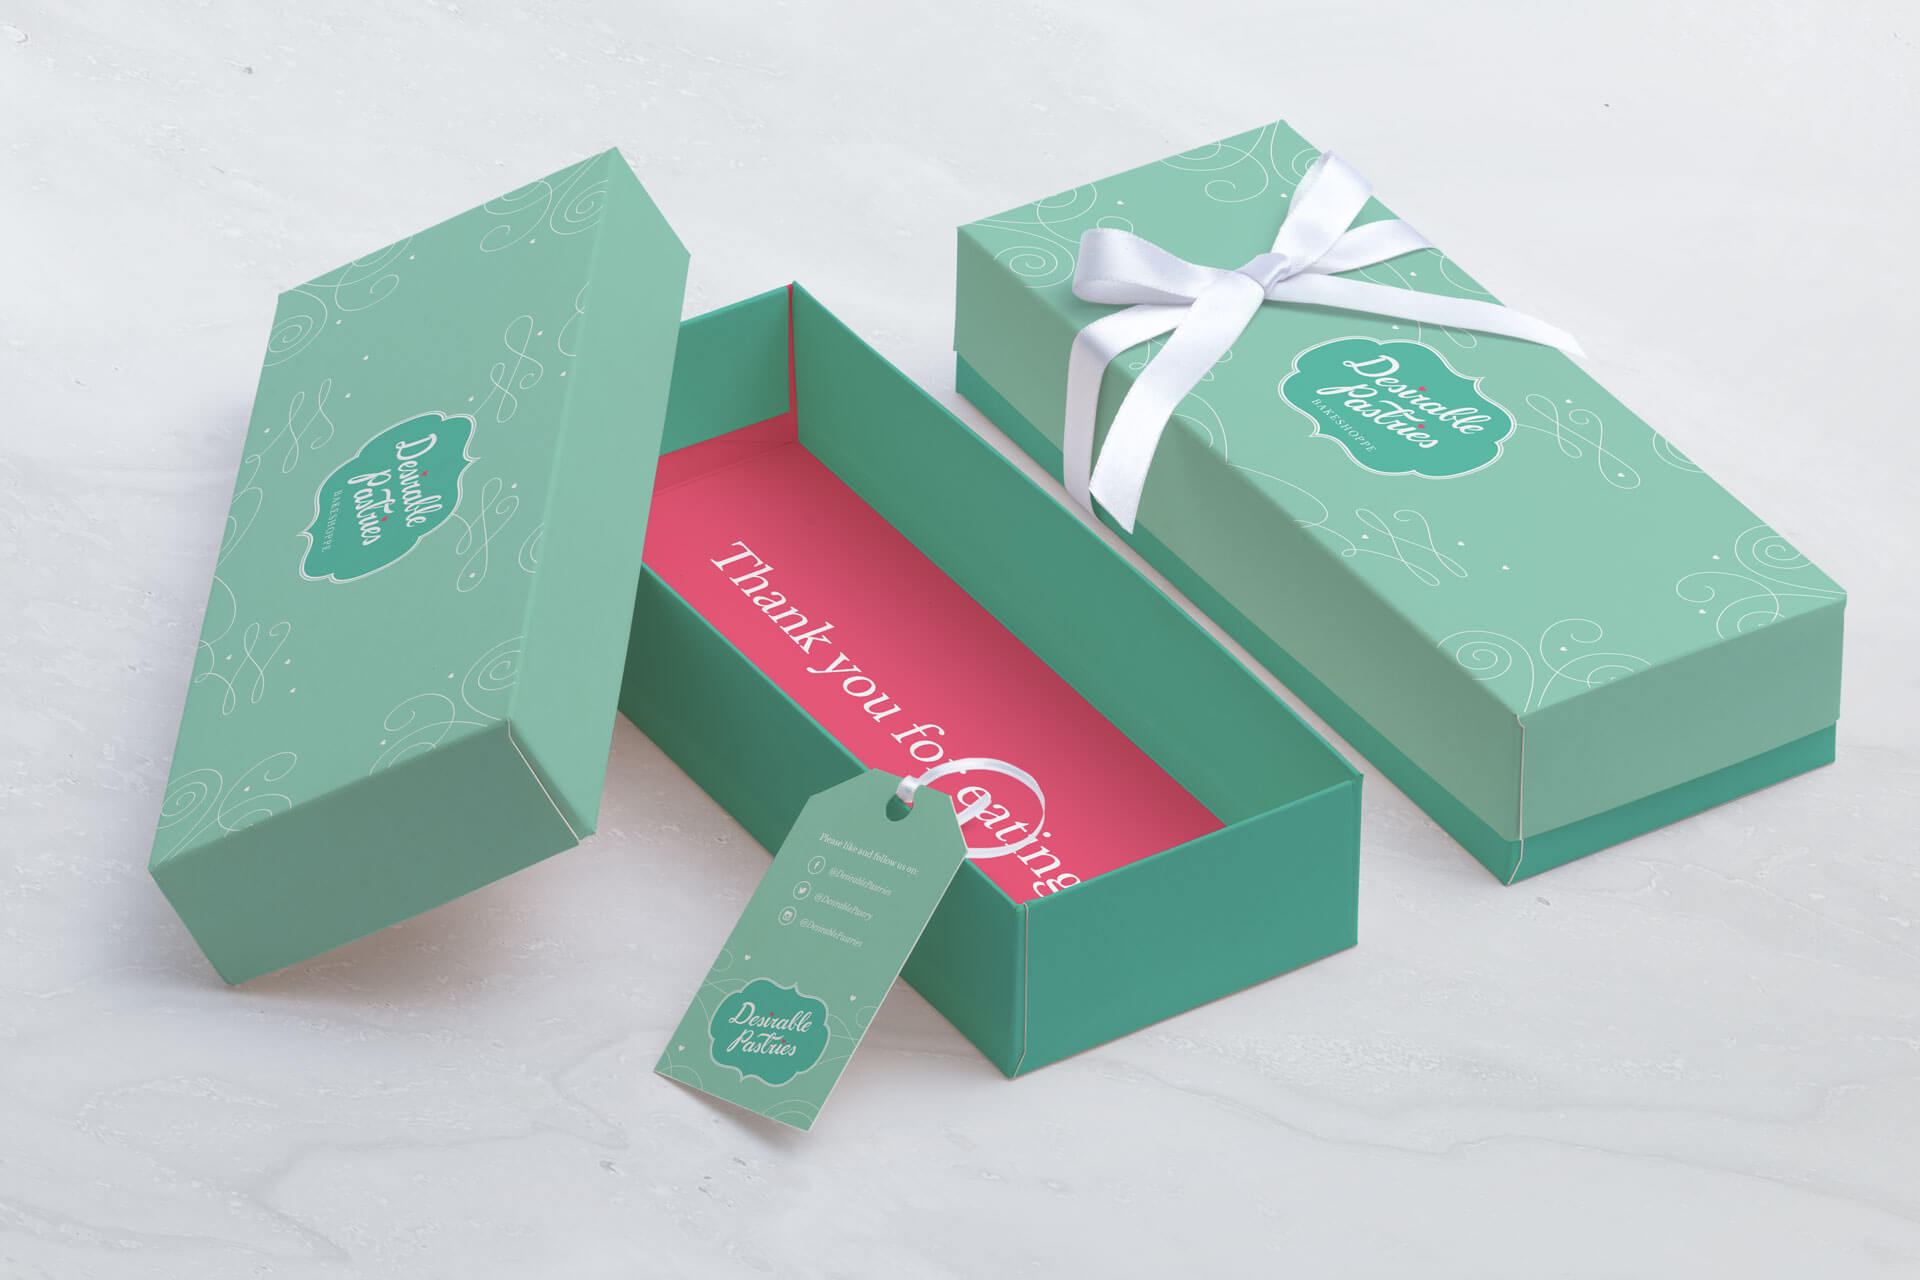 Desirable Pastries grand opening event box